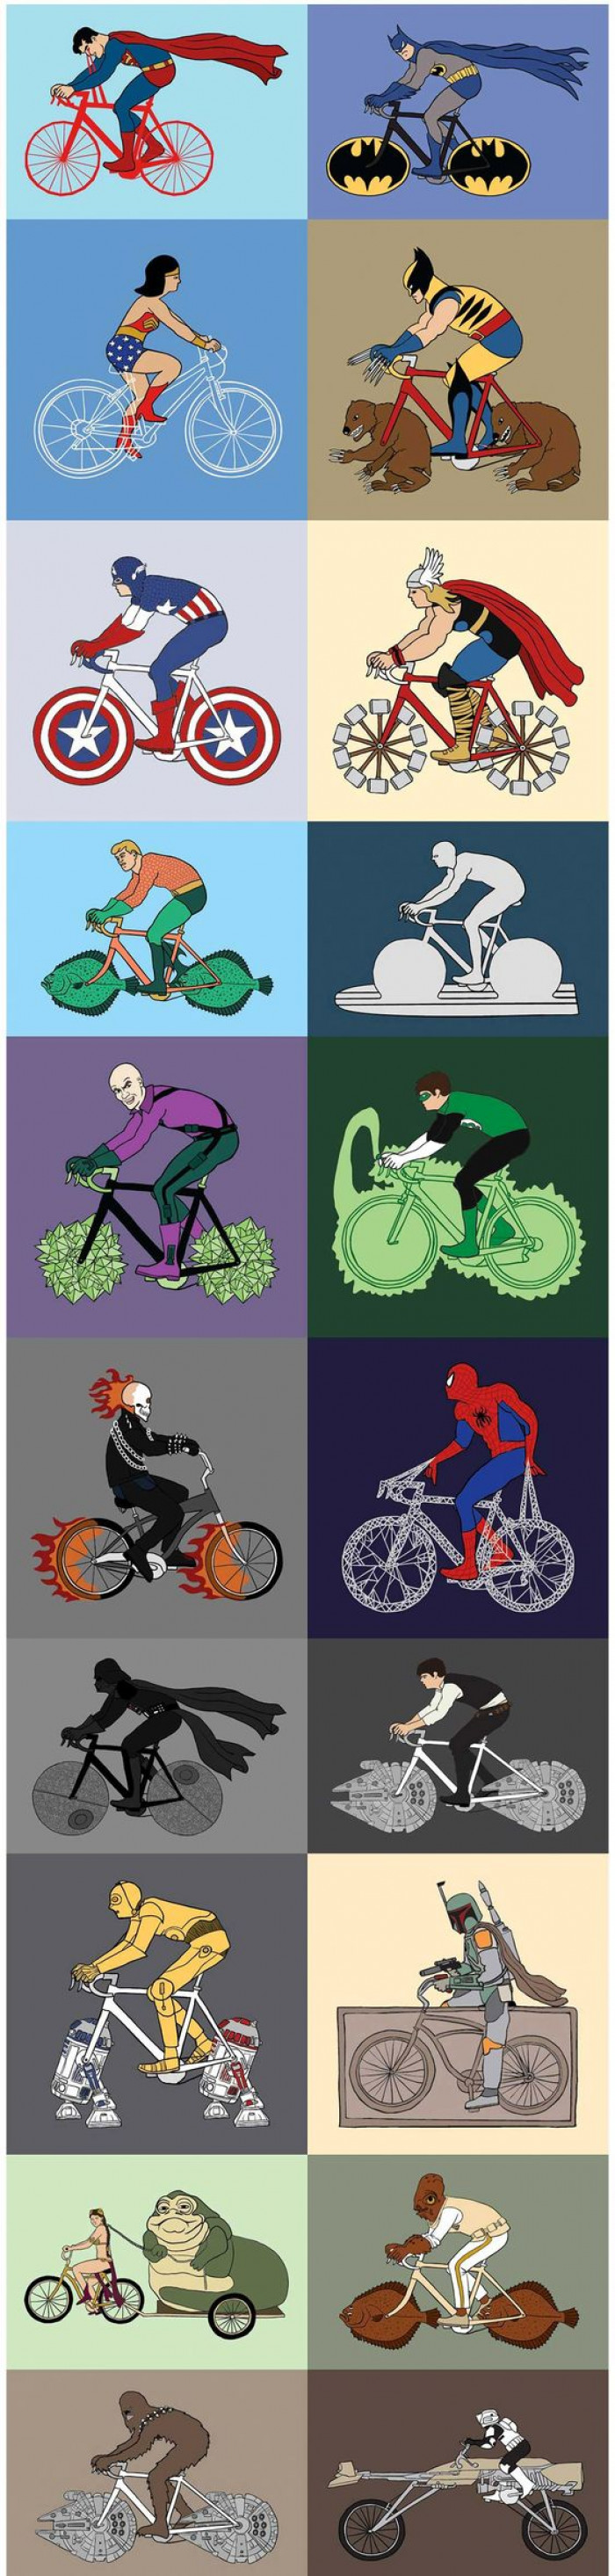 Cool Drawings Of Superheroes And Their Bikes That Will Make You LOL